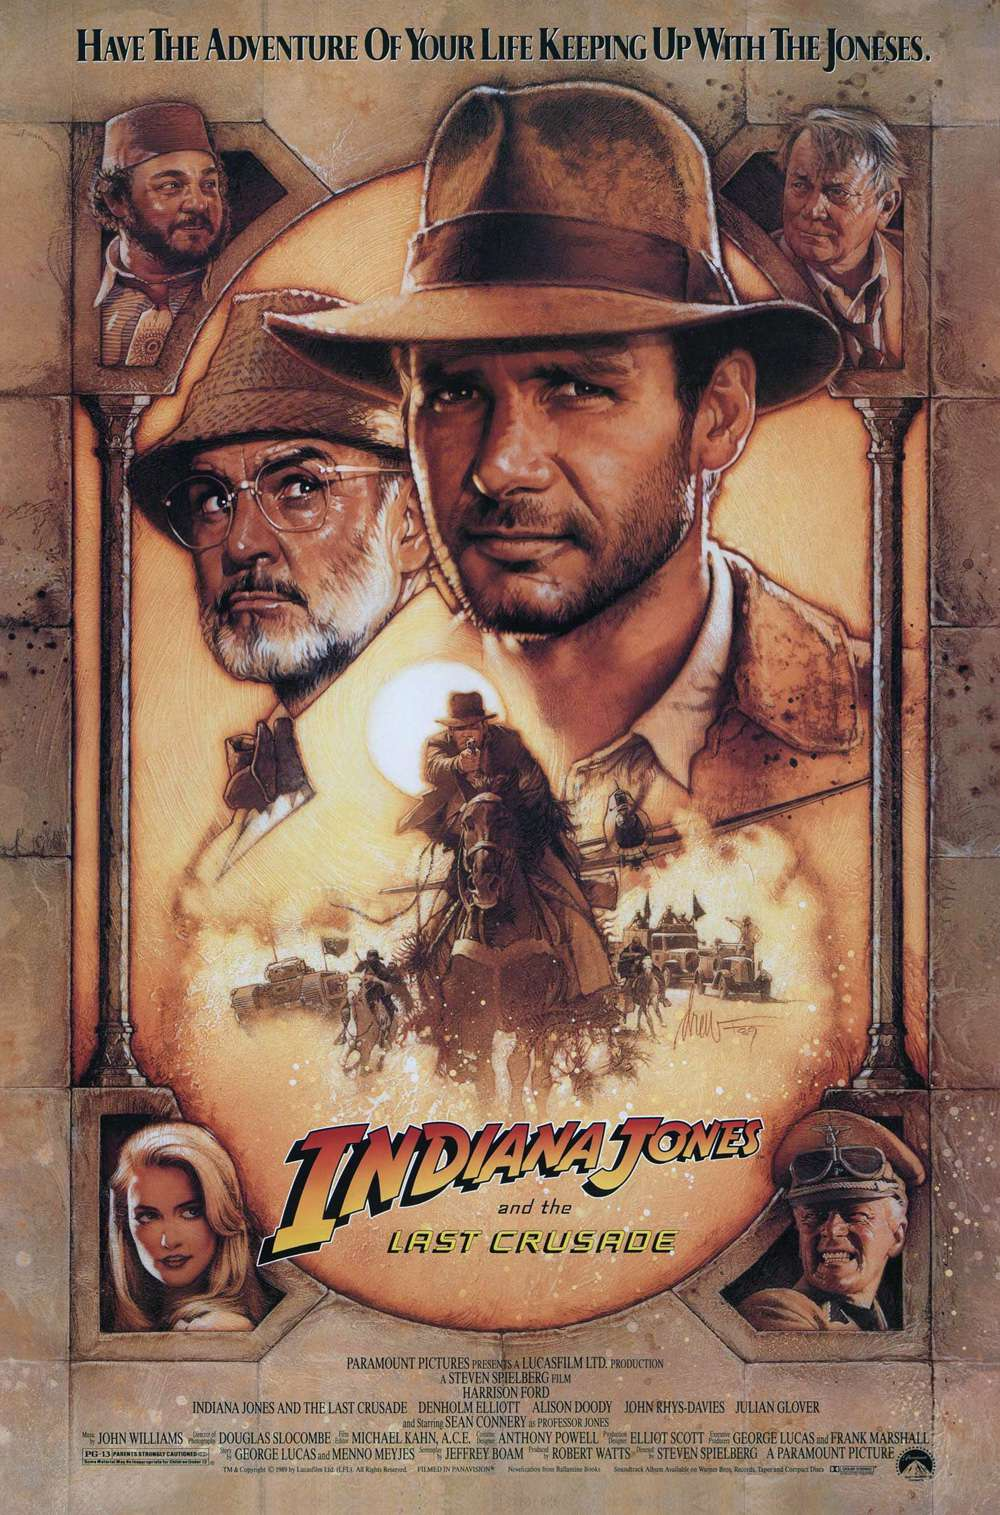 Poster for Indiana Jones and the Last Crusade (1989)